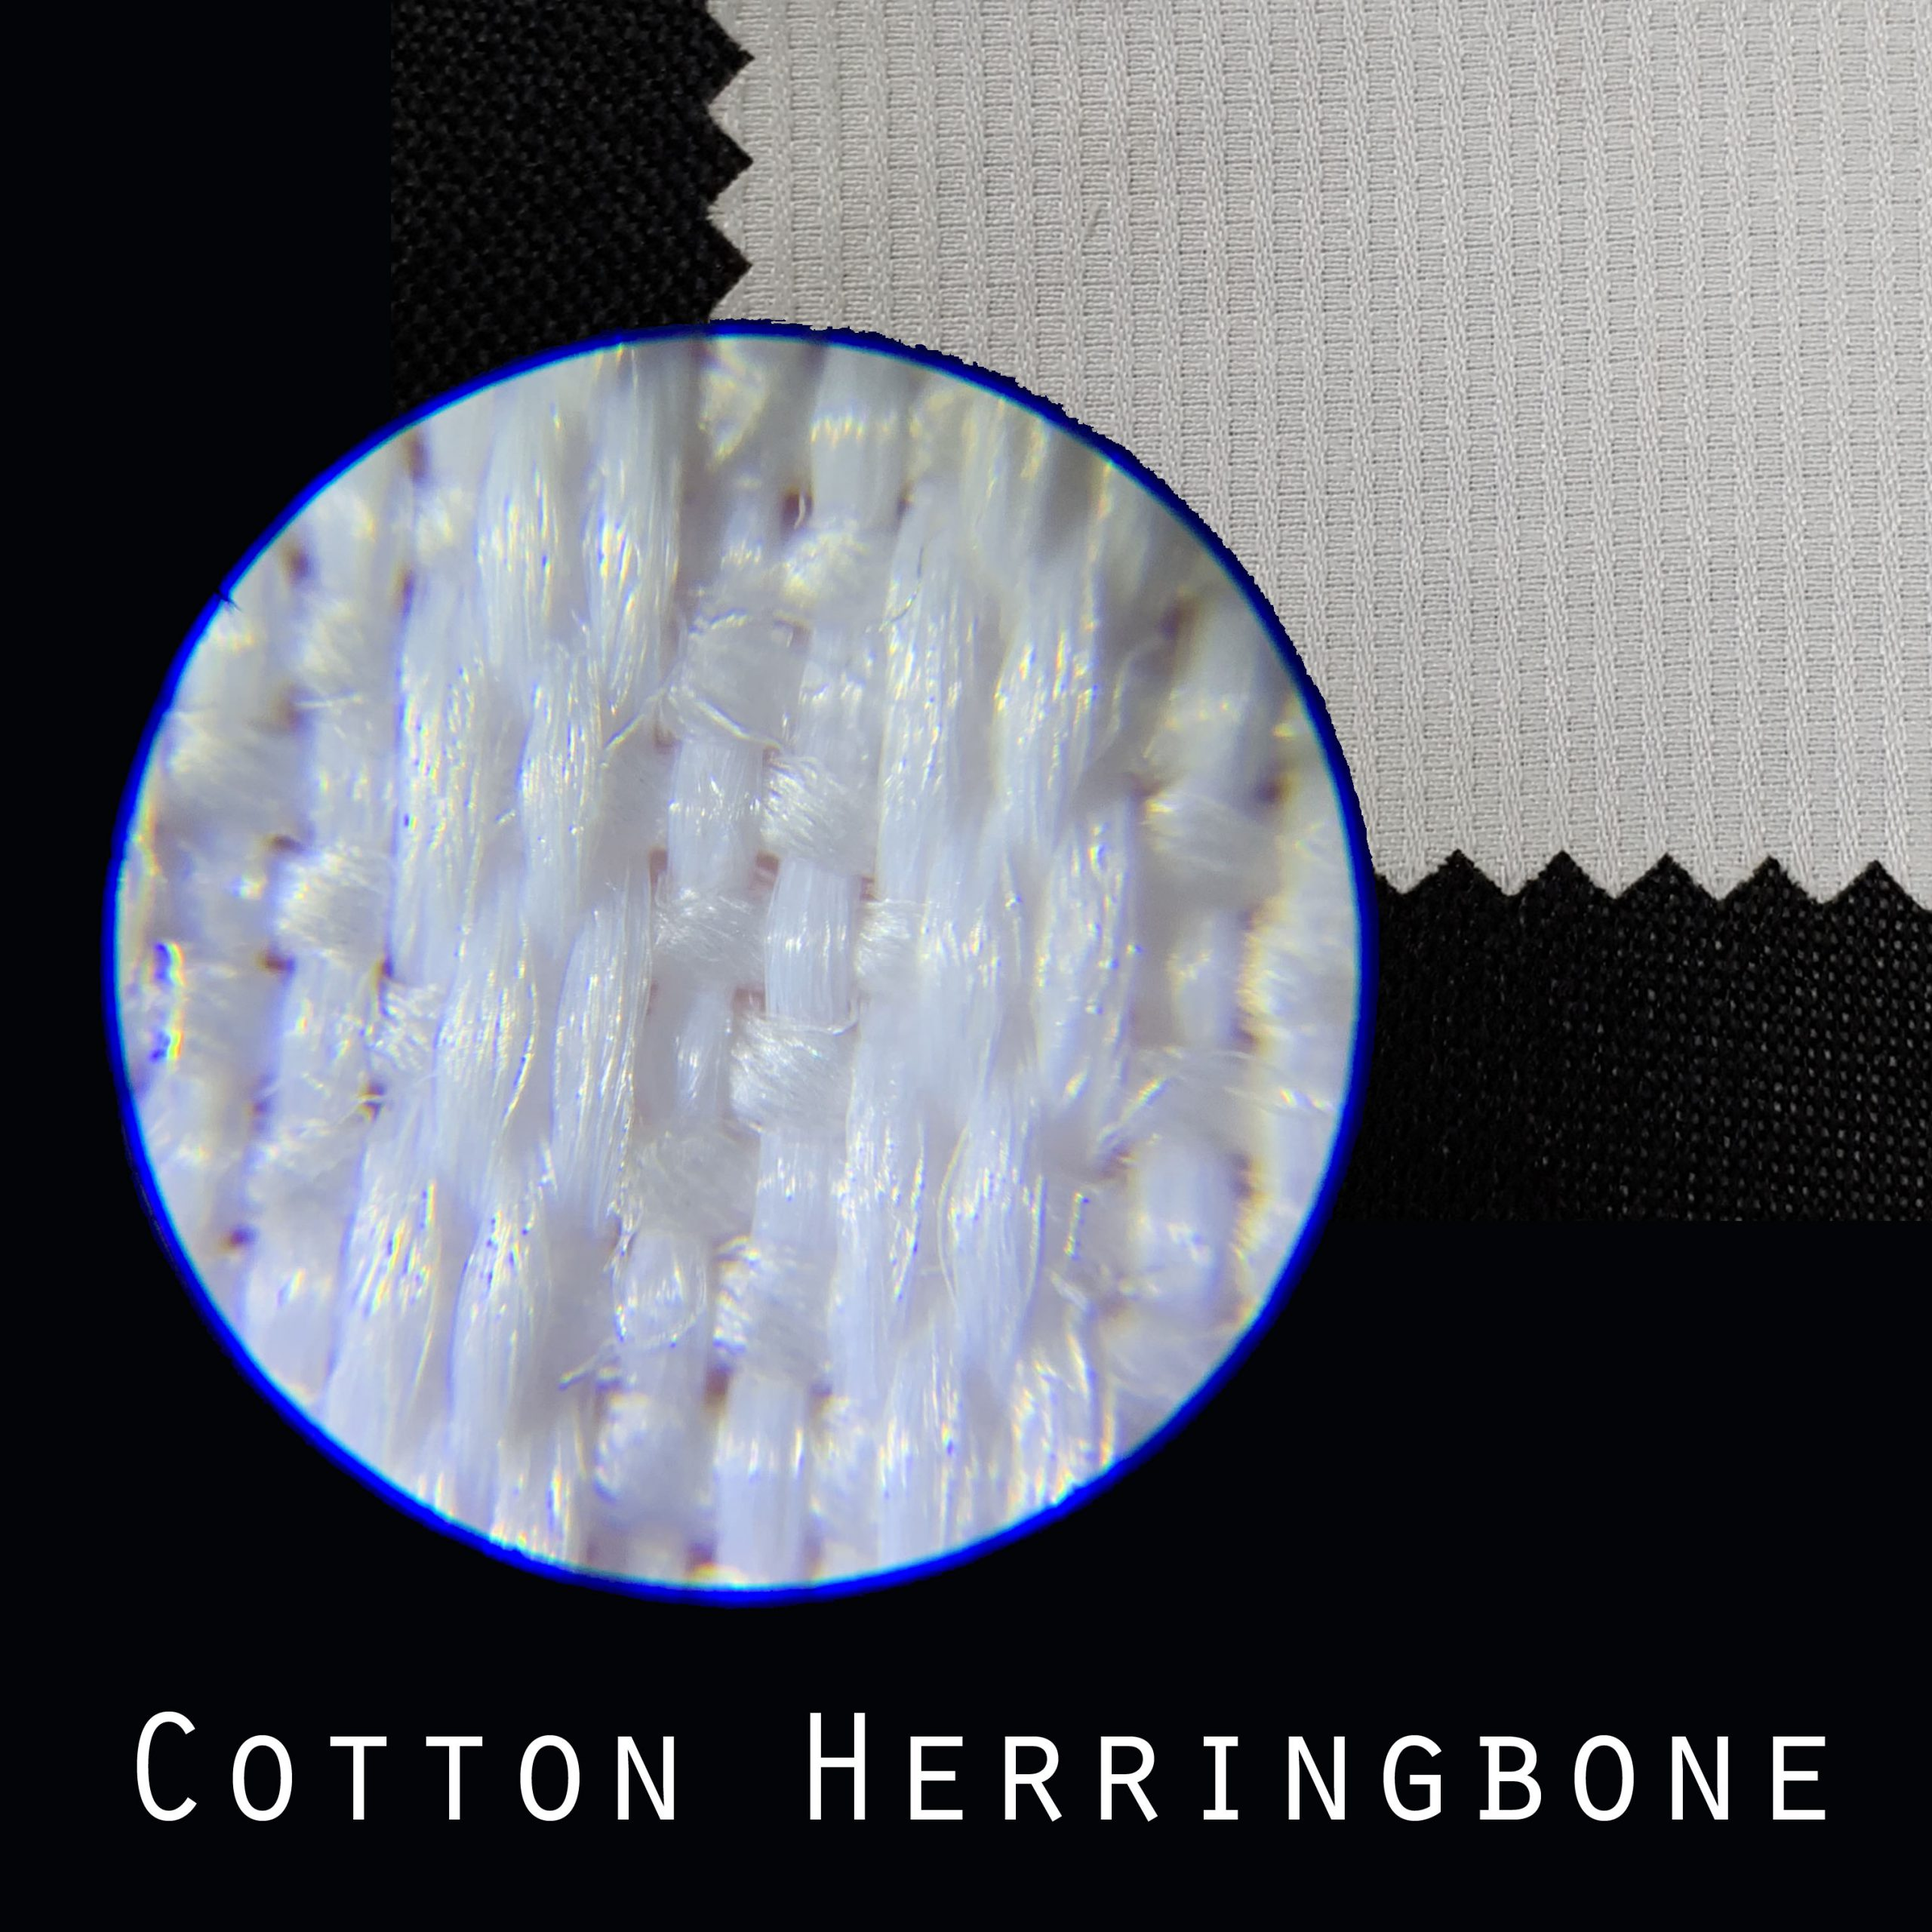 x50 magnify fabric surface cotton herringbone